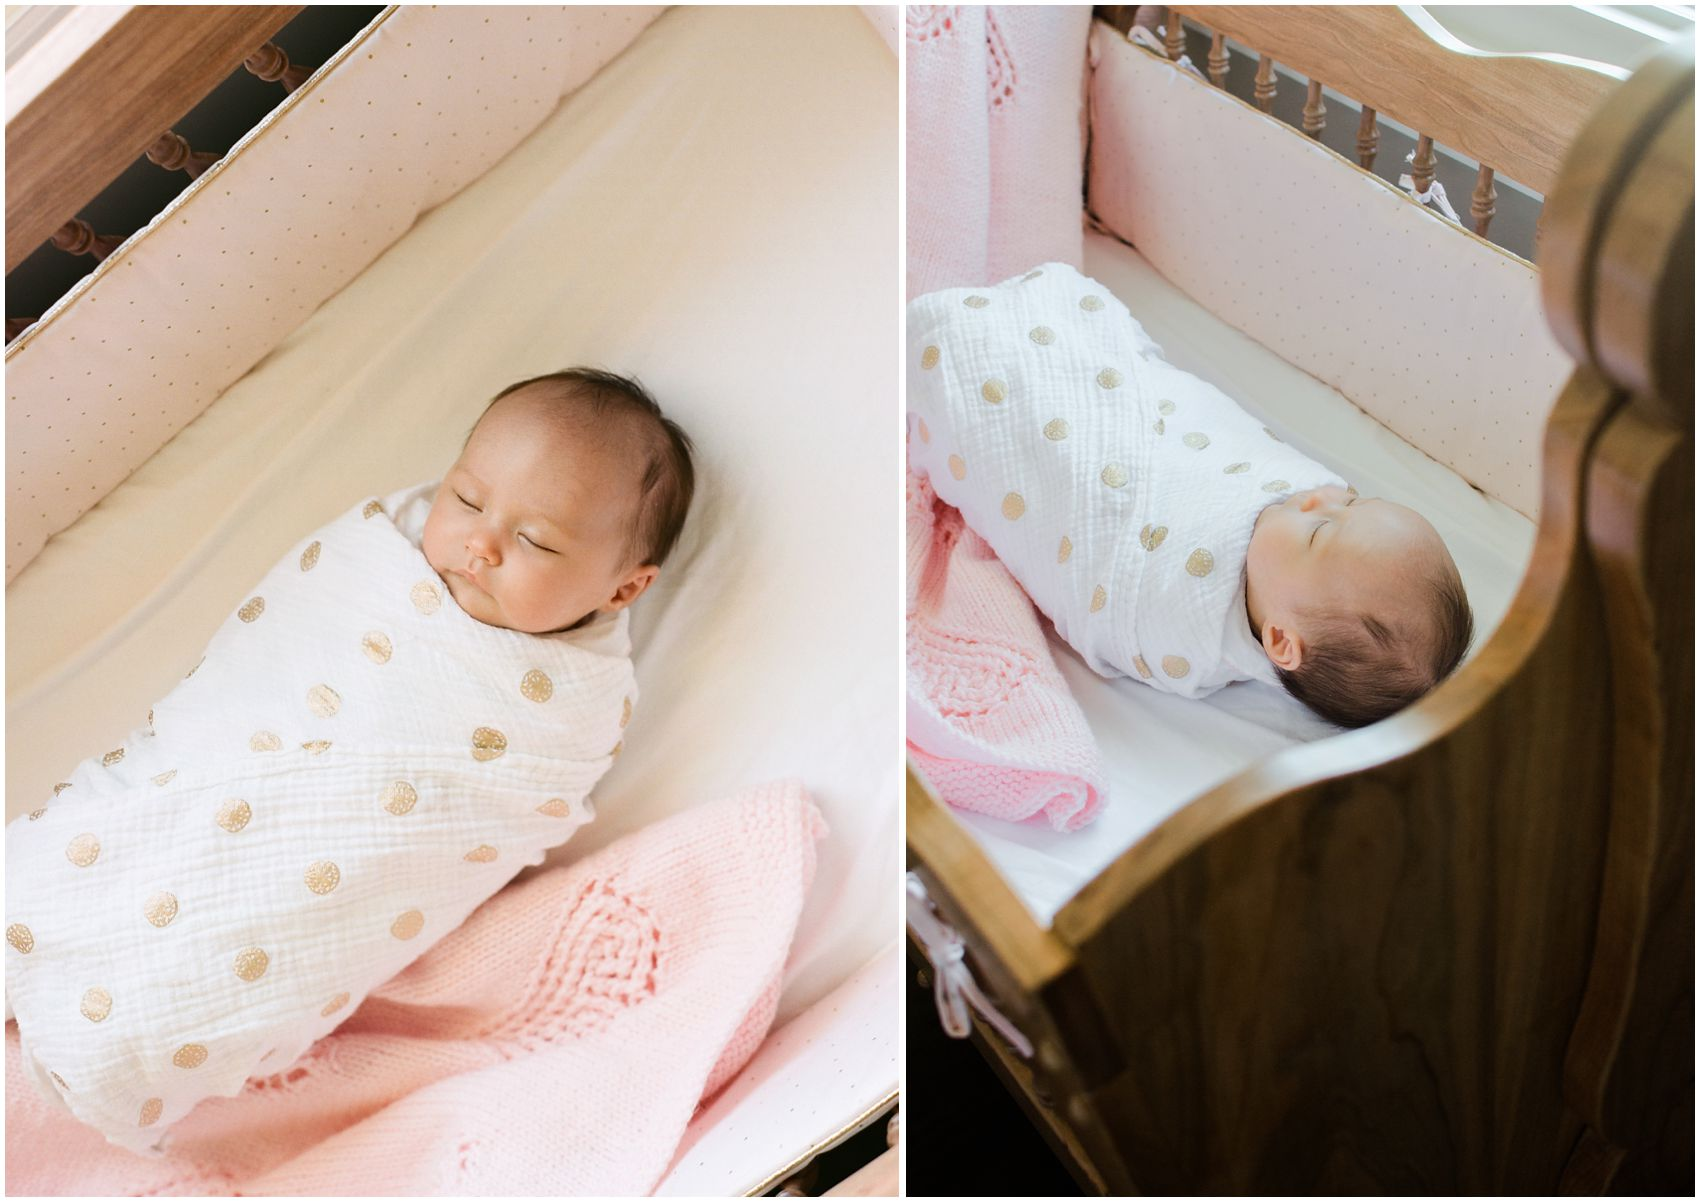 NYC Newborn Photographer Miriam Dubinsky shares how to incorporate personal items in portraits showing a baby girl sleeping in a handmade wooden crib